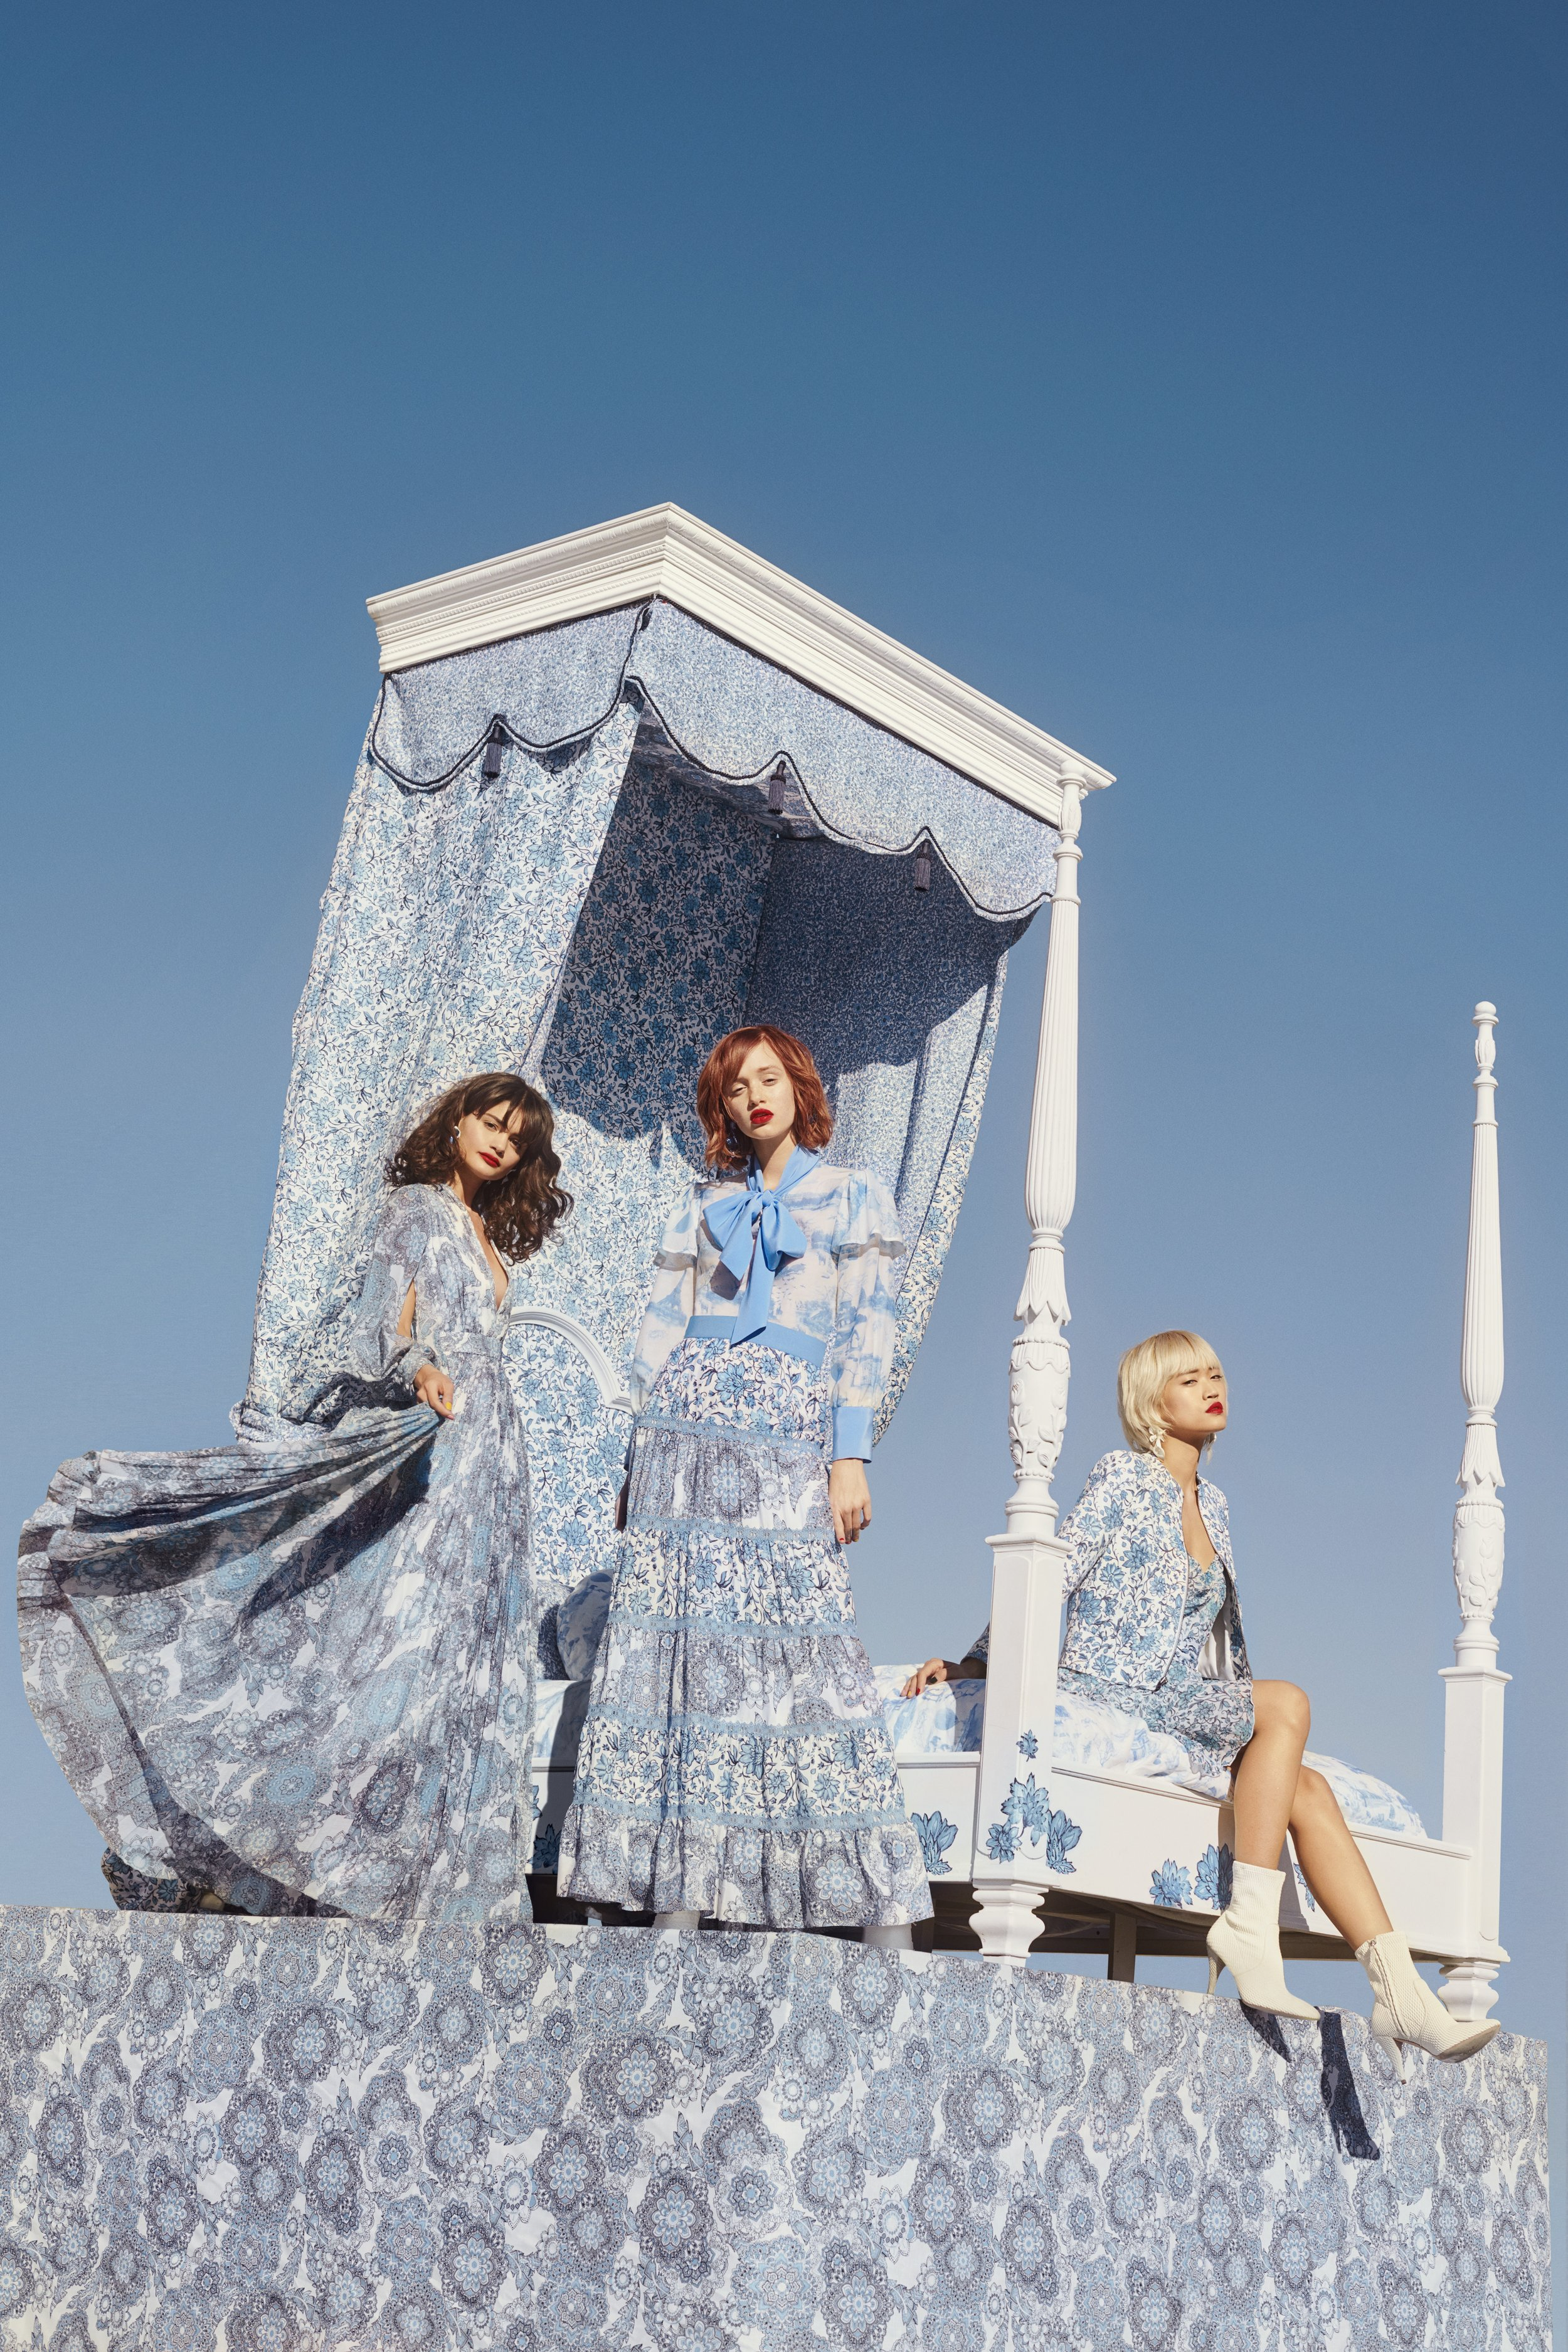 M771_DKR_Alice+Olivia_Harrods_Blue_07_1372_FNL.jpeg